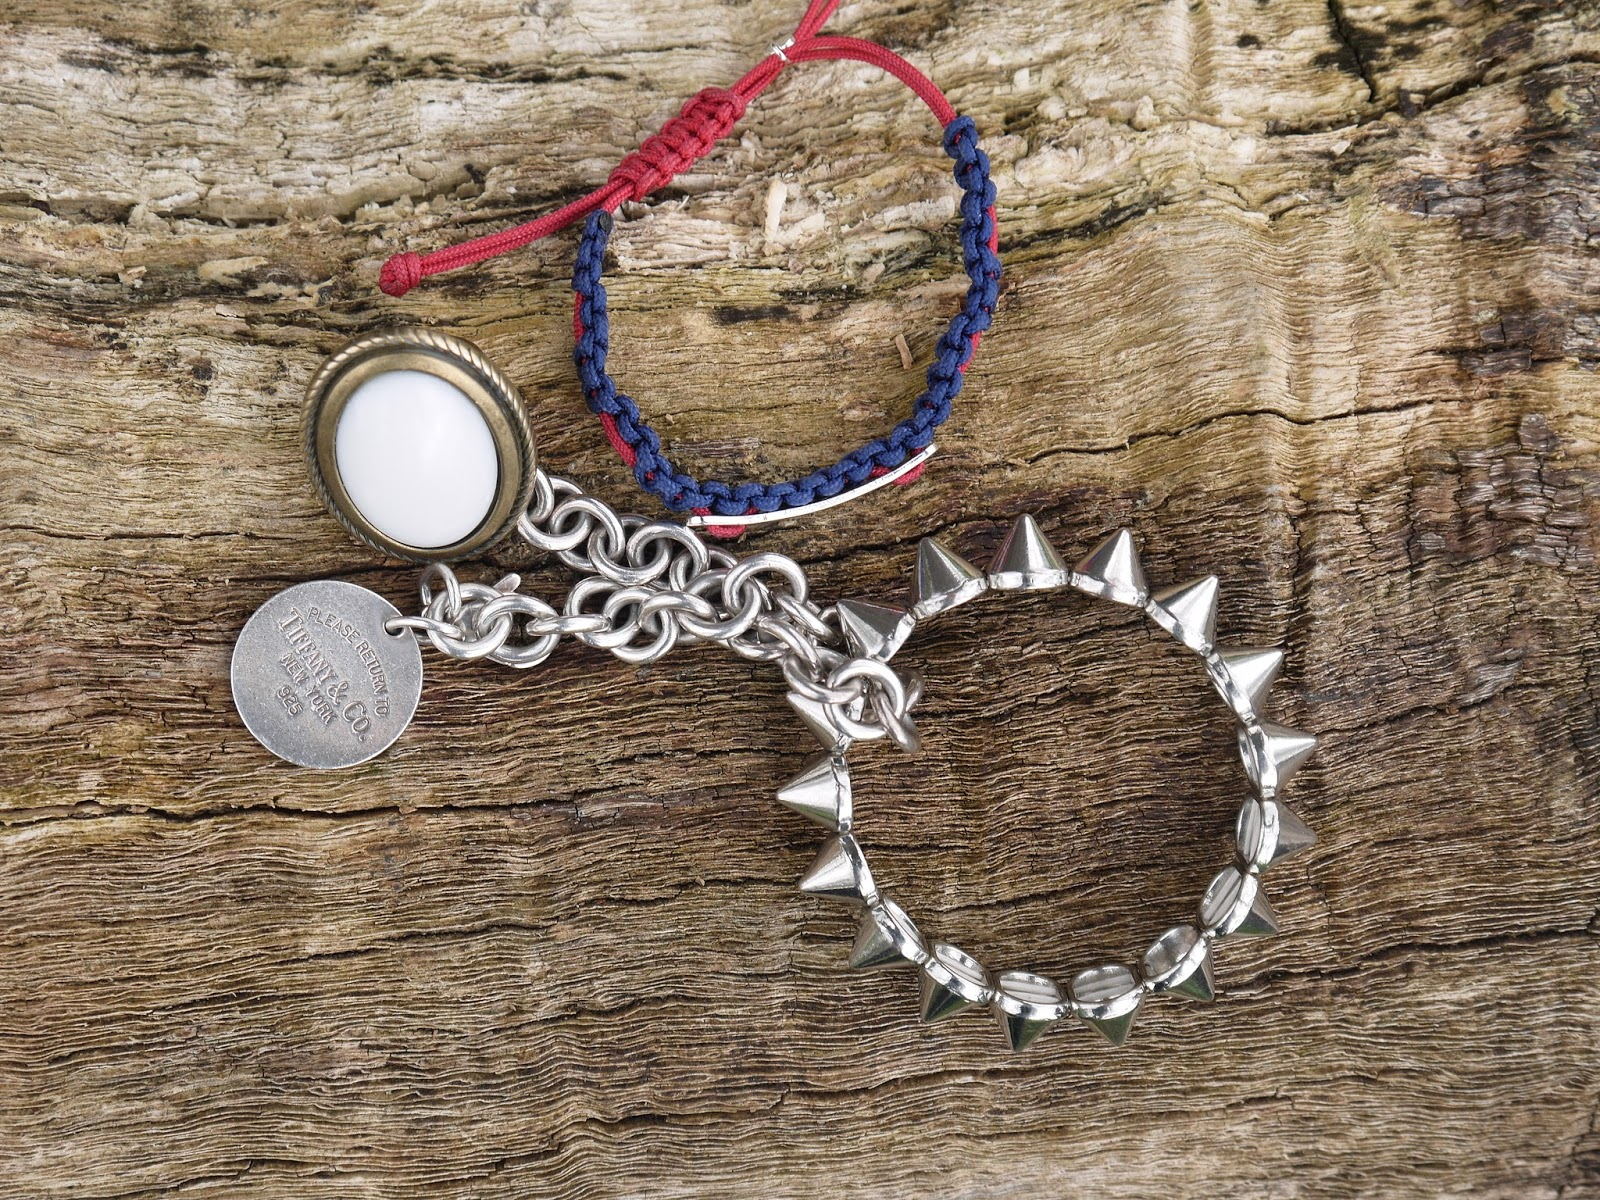 Accessories: Ring and Bracelets